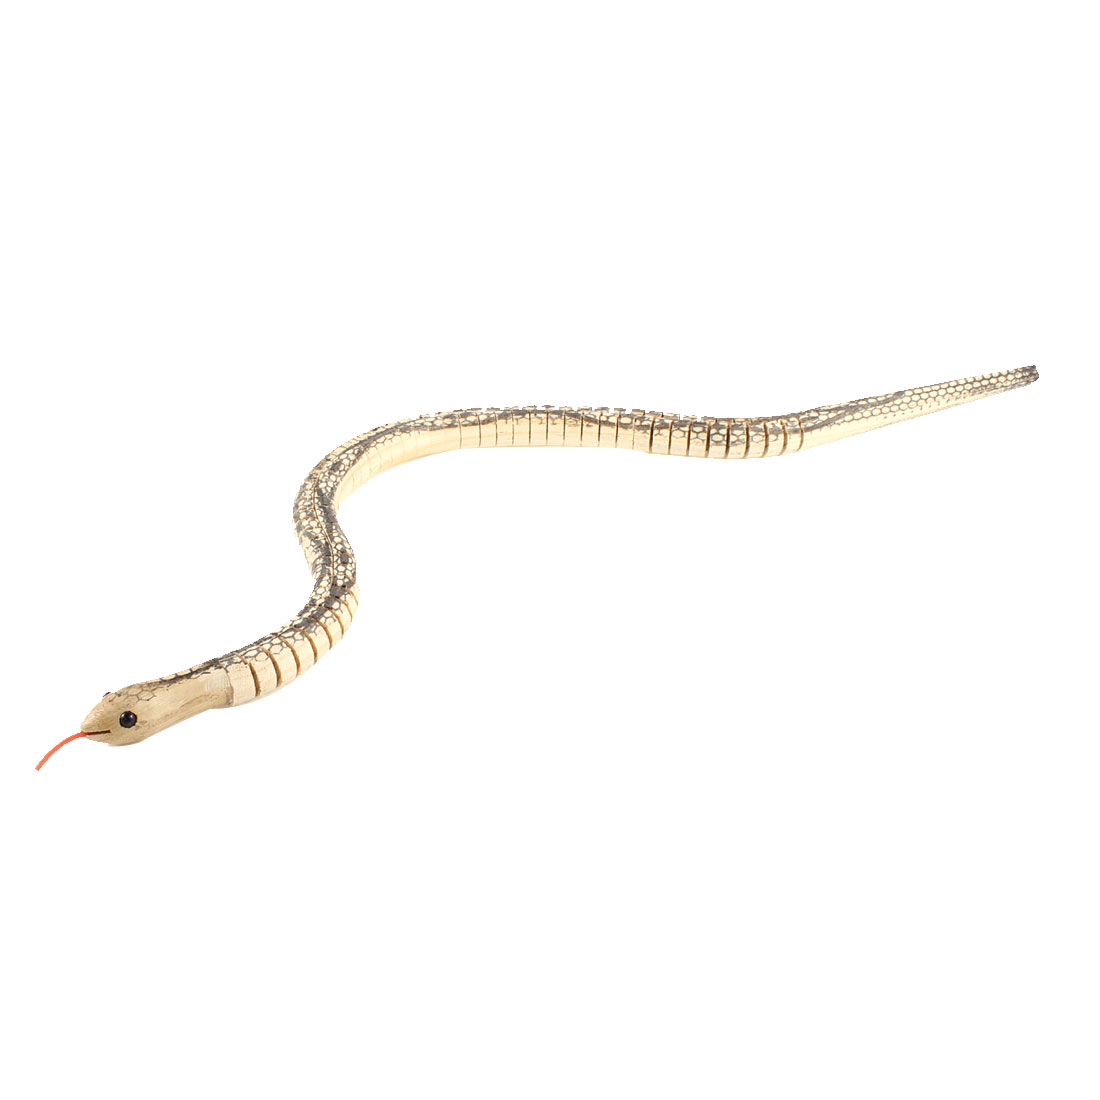 Child Gray Beige Wooden Flexible Manmade Bendy Snake Toy Ornament